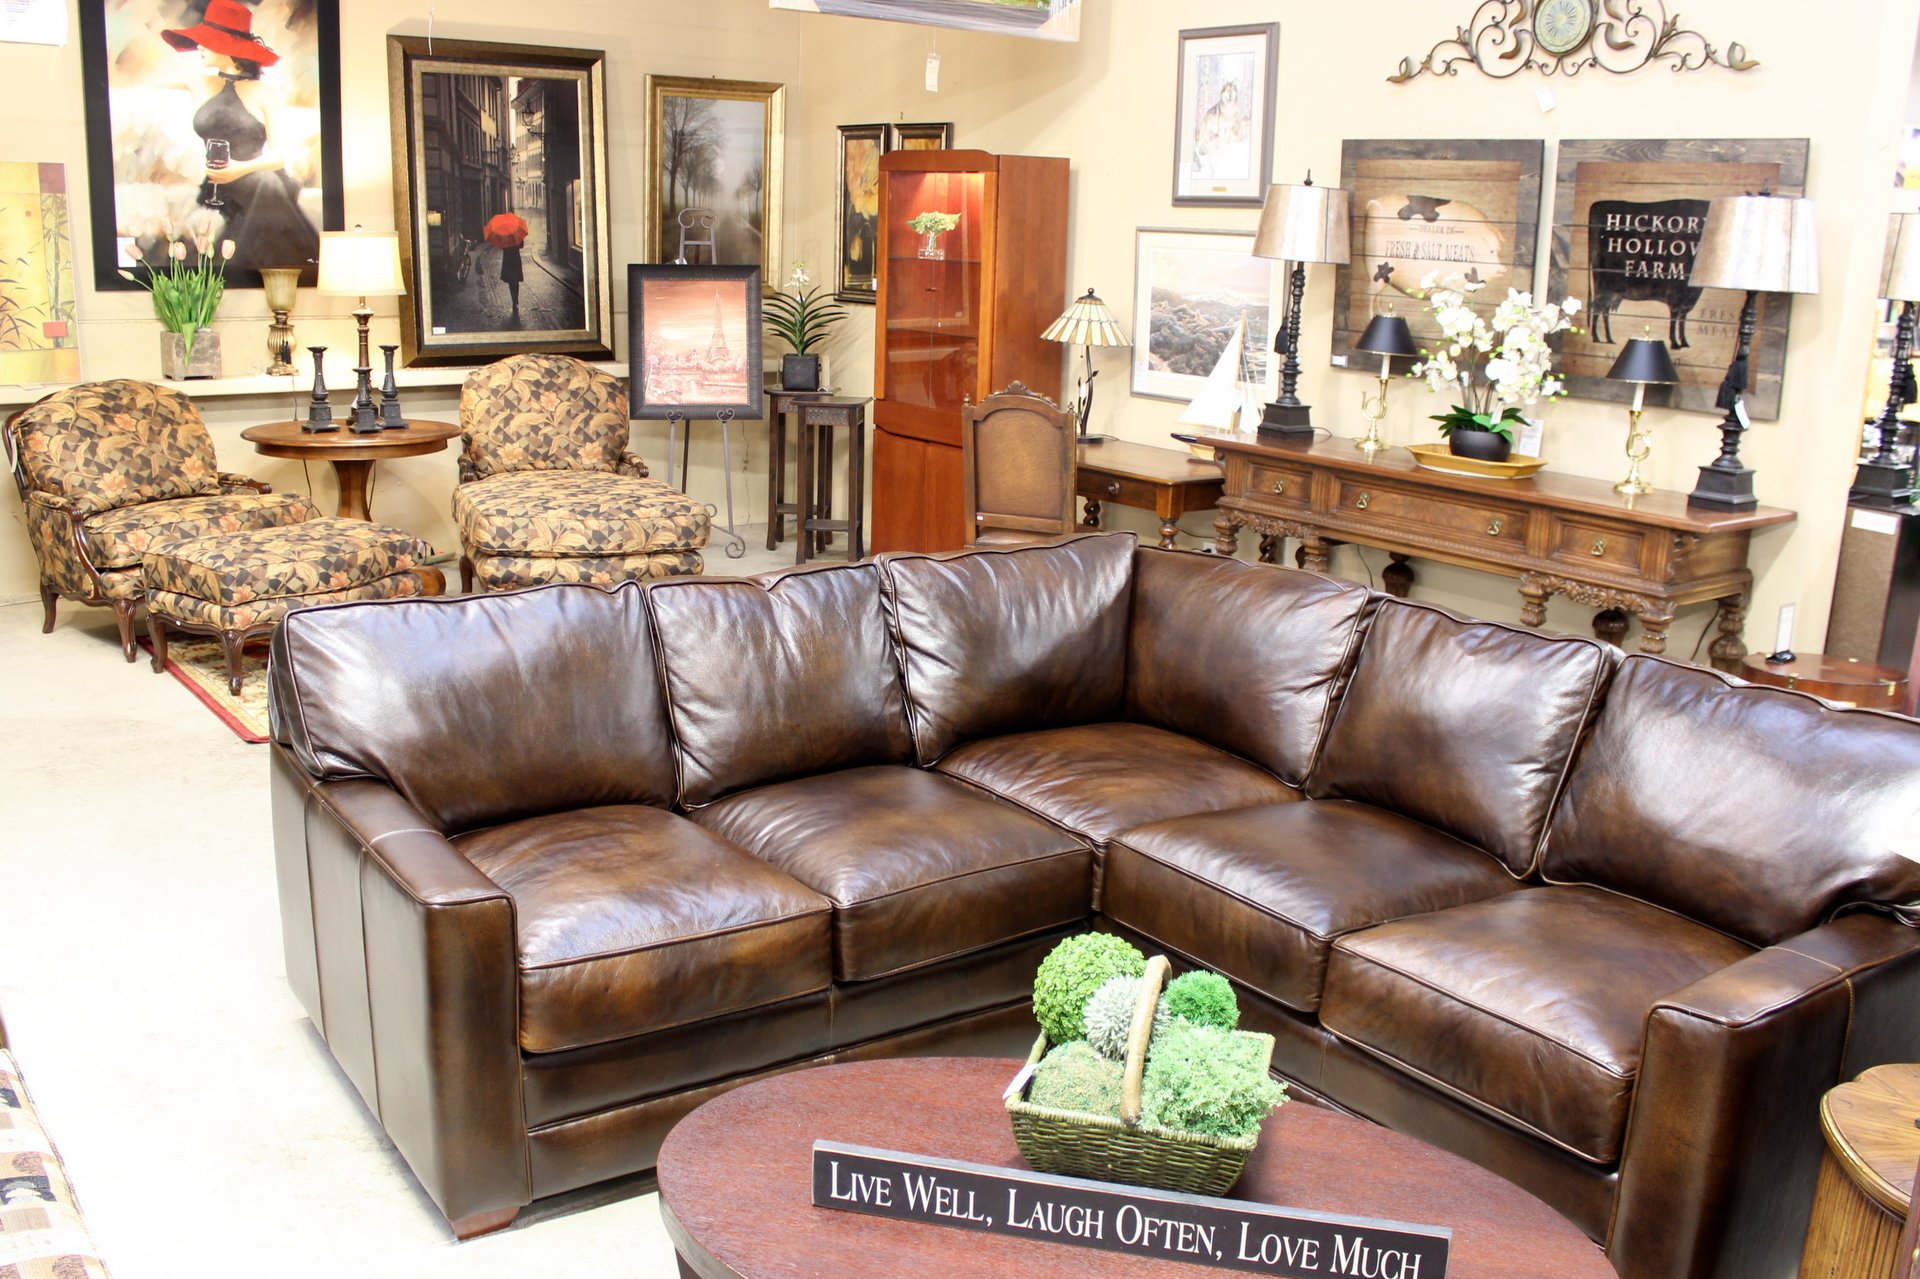 Find Me A Furniture Store Upscale Consignment Upscale Used Furniture Decor